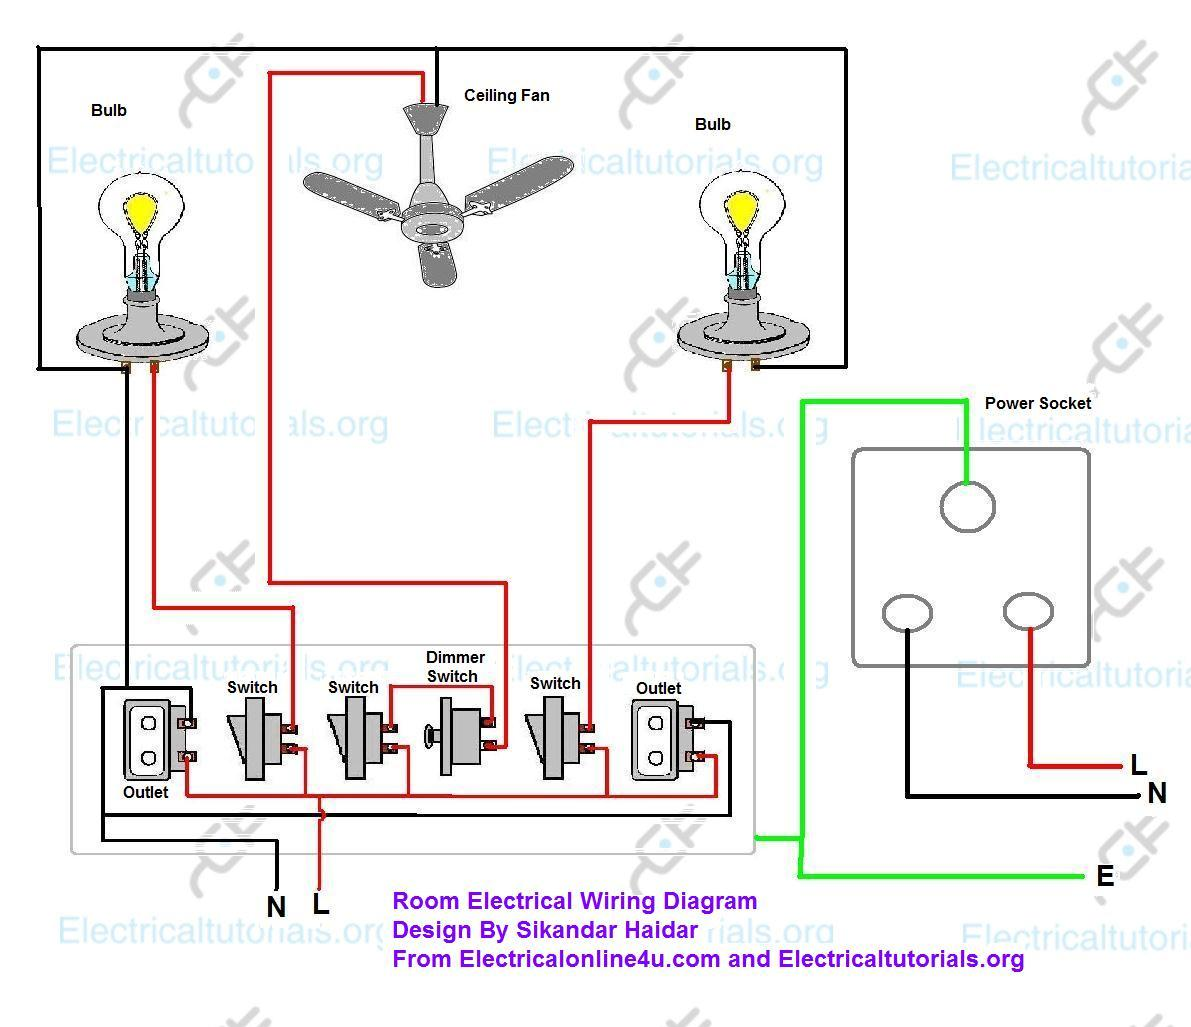 house wiring ppt the wiring diagram electrical wiring drawing for house vidim wiring diagram house wiring